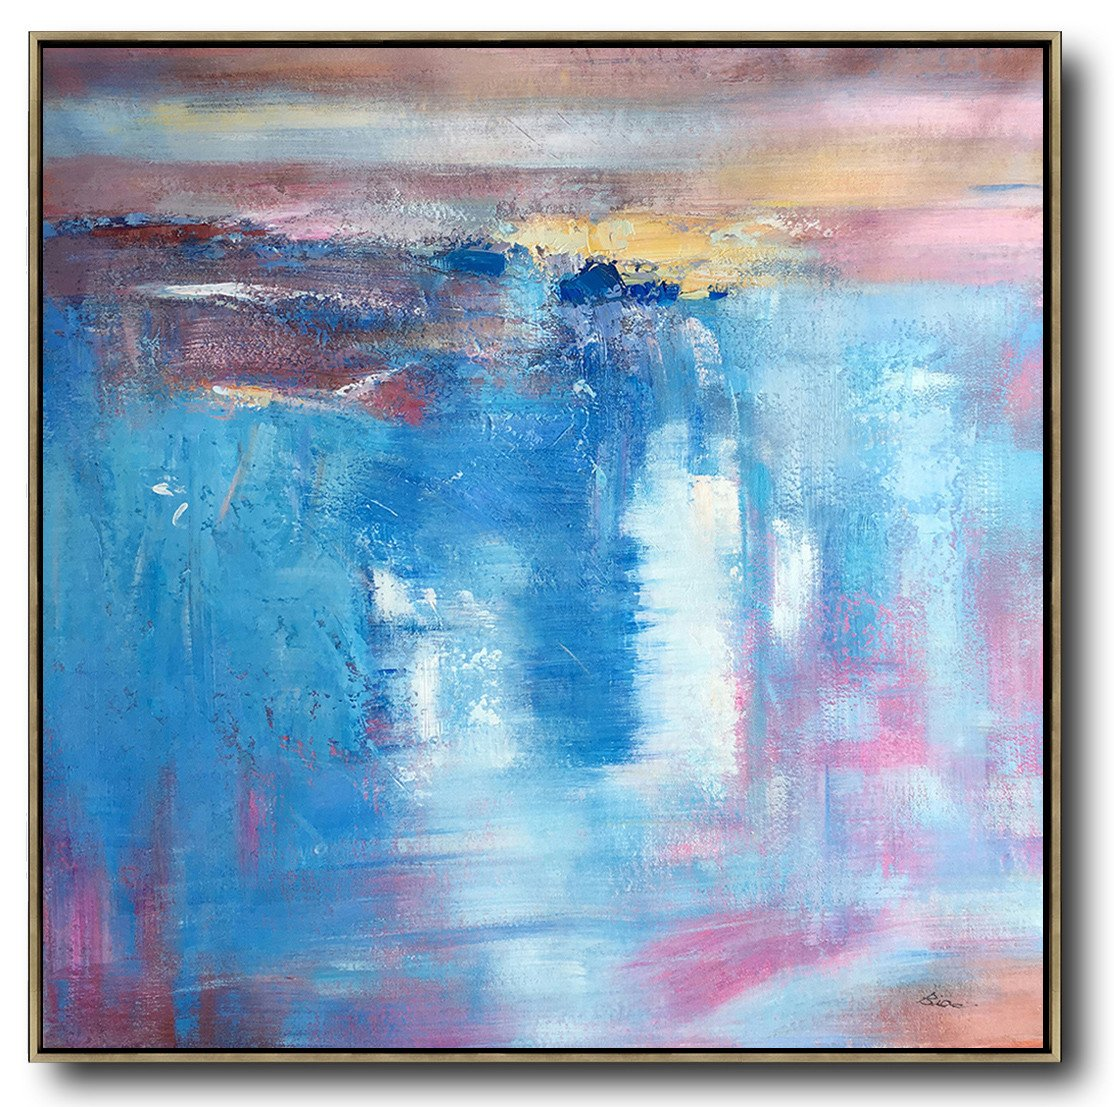 Extra Large Abstract Painting On Canvas,Oversized Contemporary Art,Acrylic Painting Canvas Art,Blue,White,Pink,Purple.etc